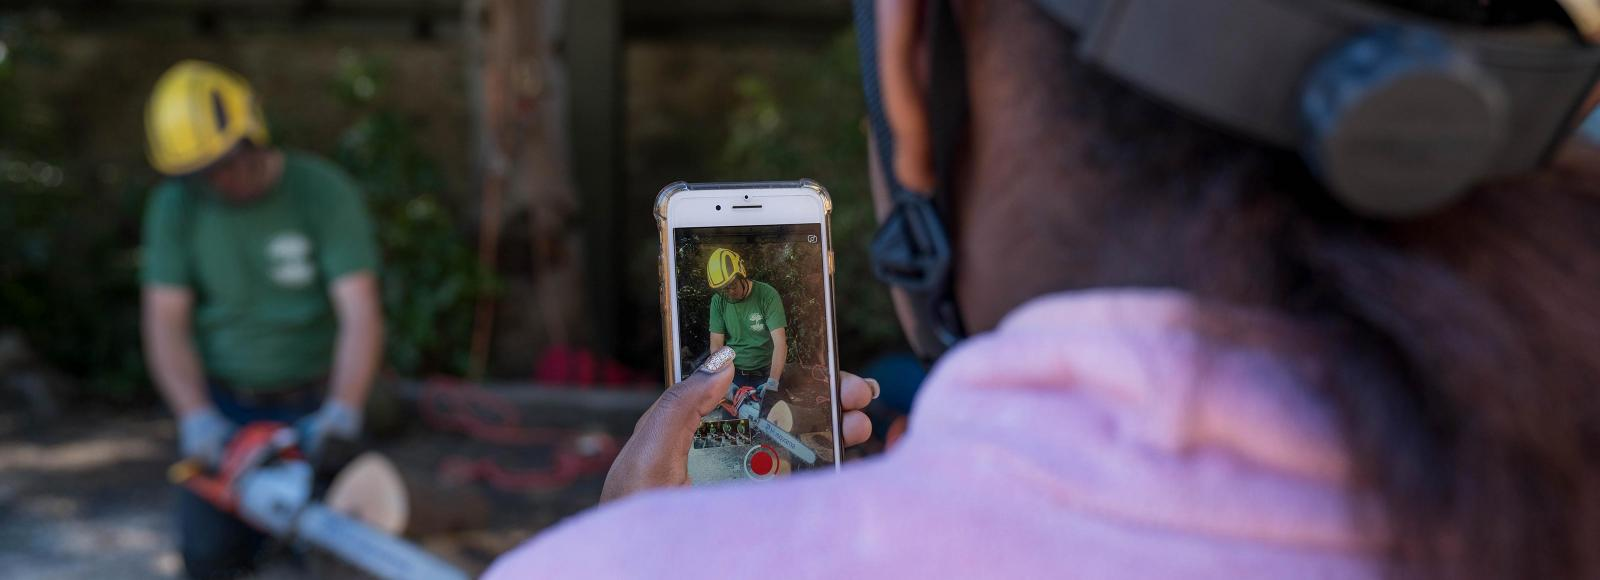 A young woman of color wearing a hard hat uses a smart phone to photograph another person demonstrating urban tree care.